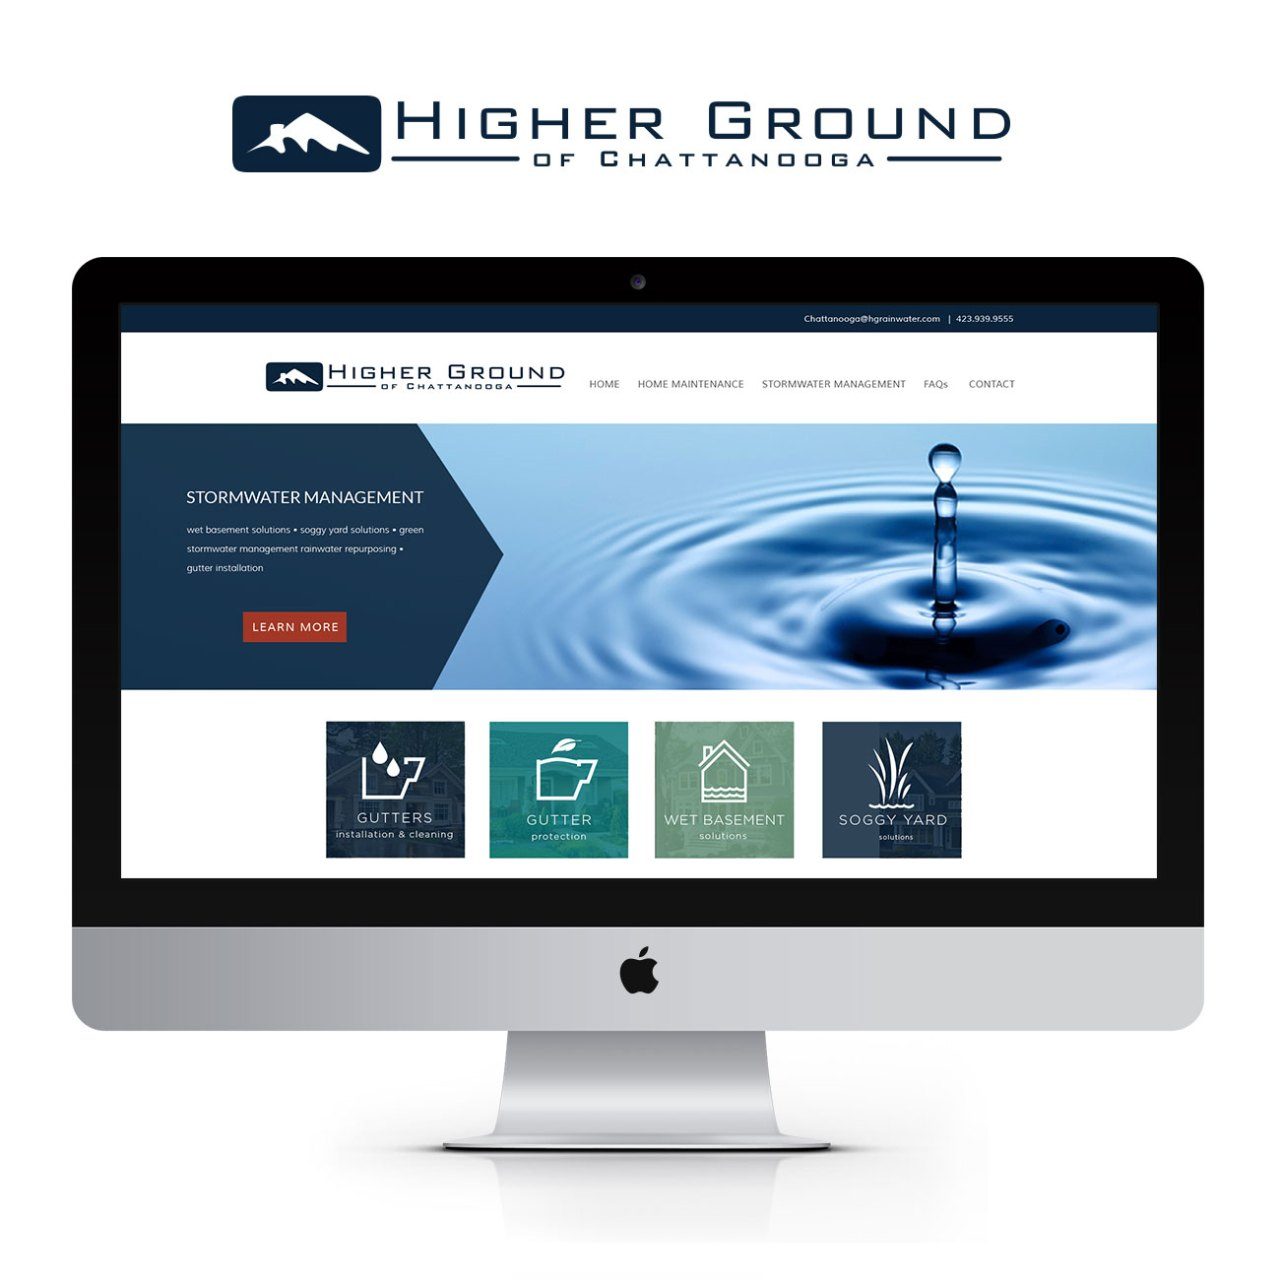 Higher Ground of Chattanooga Drainage and Gutter Solutions Website Design | Nicole Victory Design